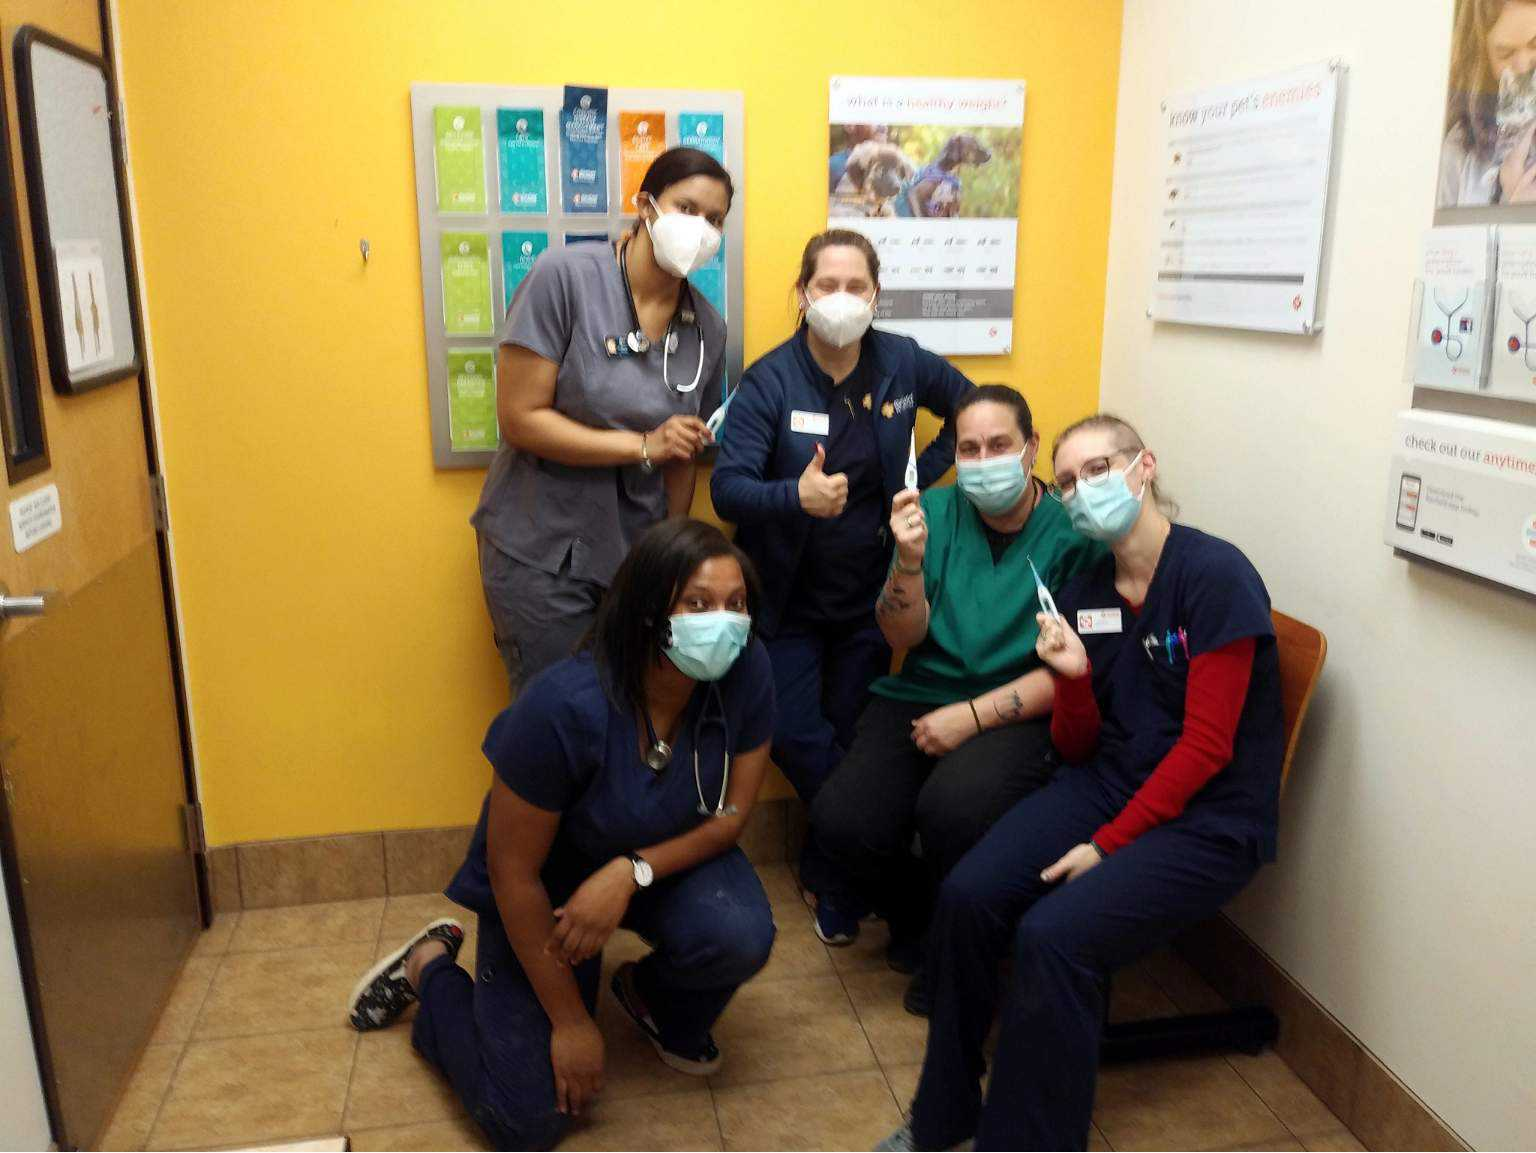 A group of Banfield Associates at the Banfield Pet Hospital